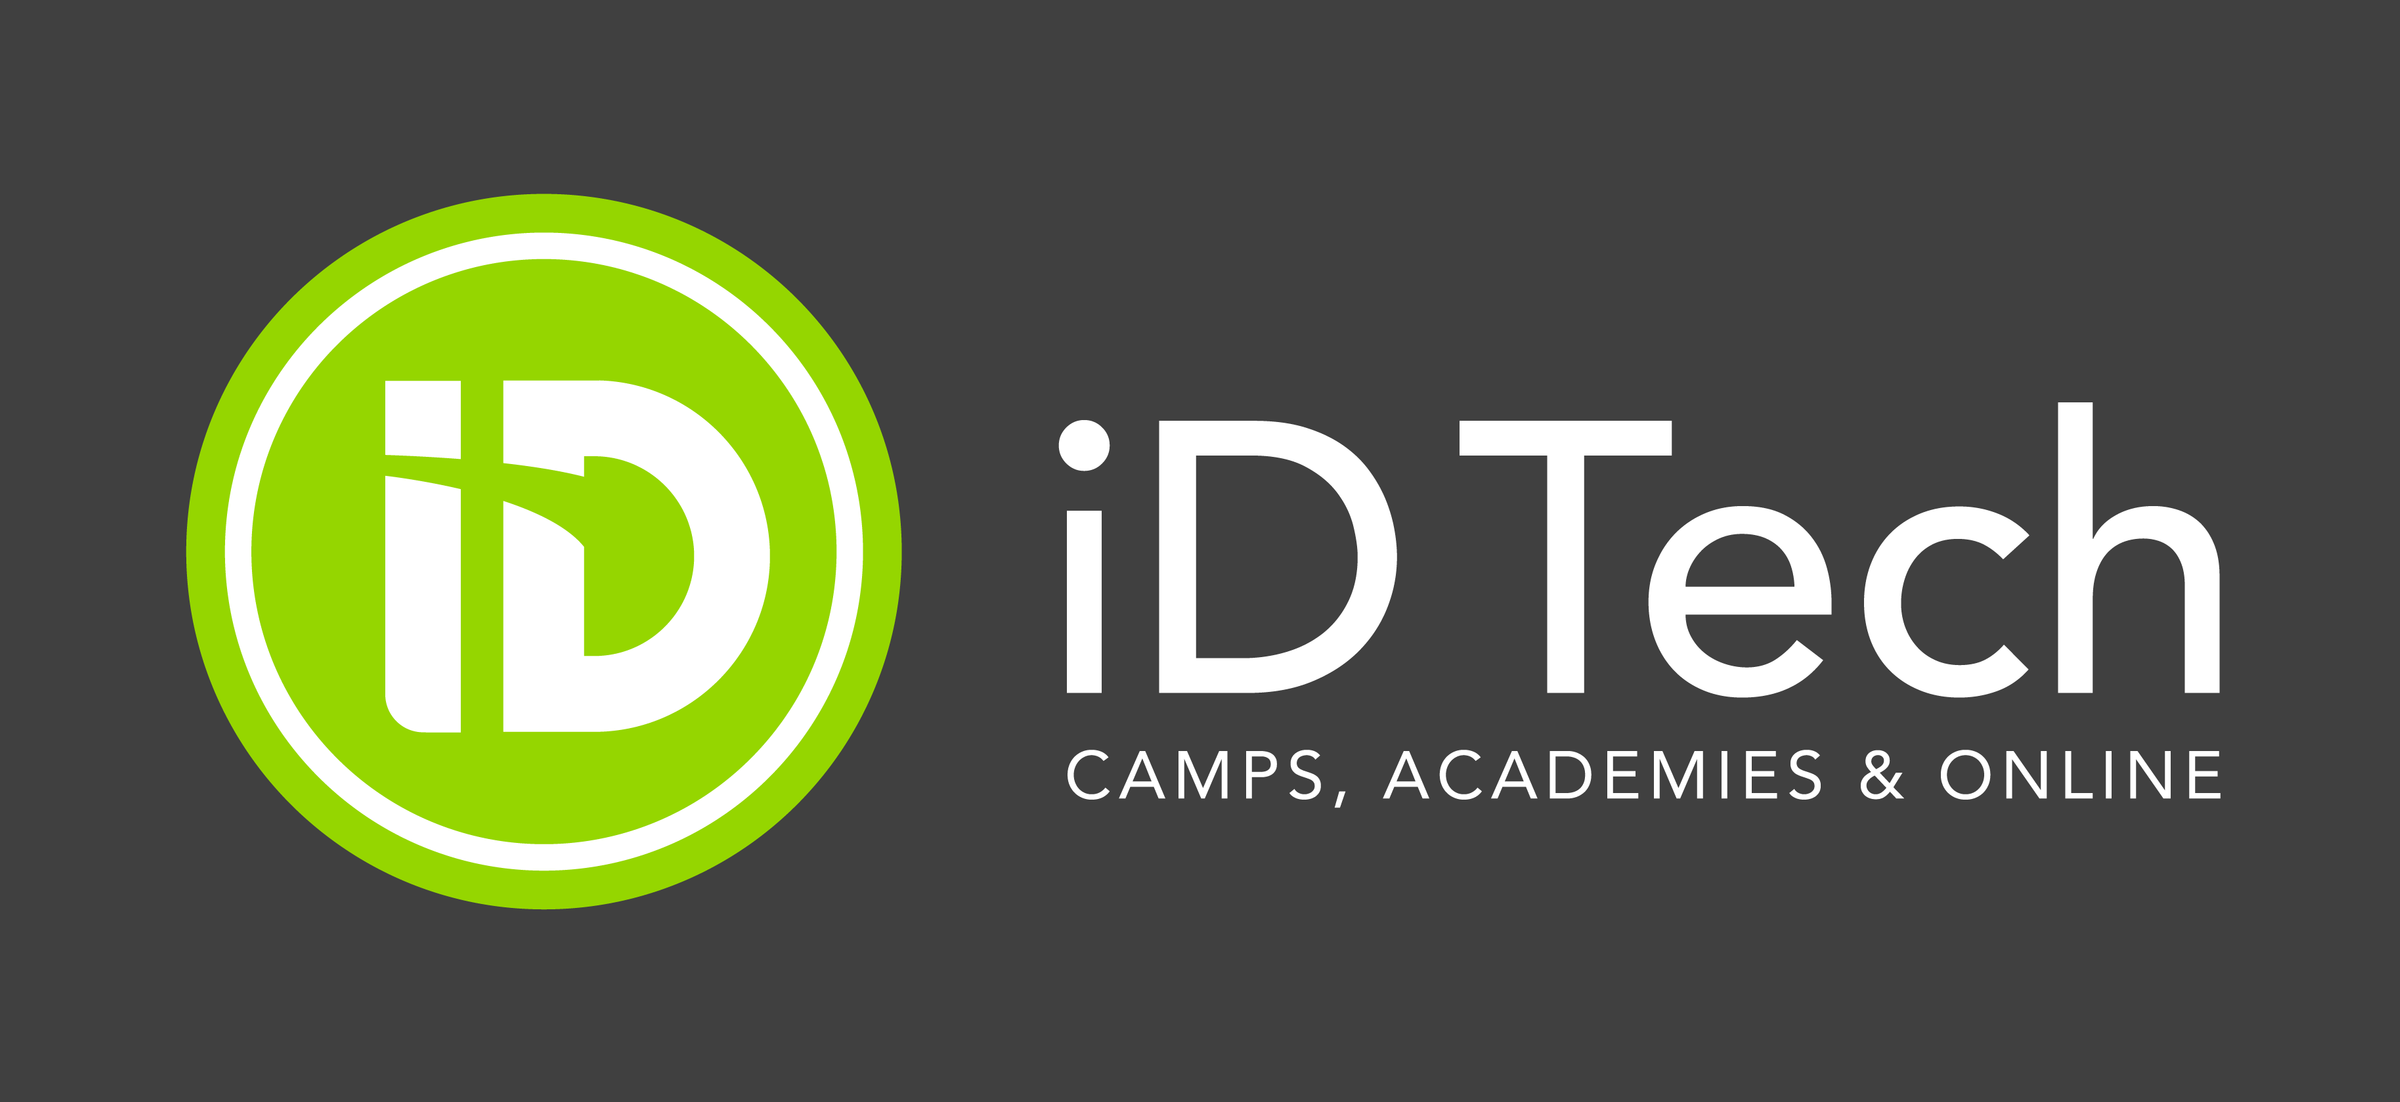 iD Tech Camps: #1 in STEM Education - Held at Dominican University